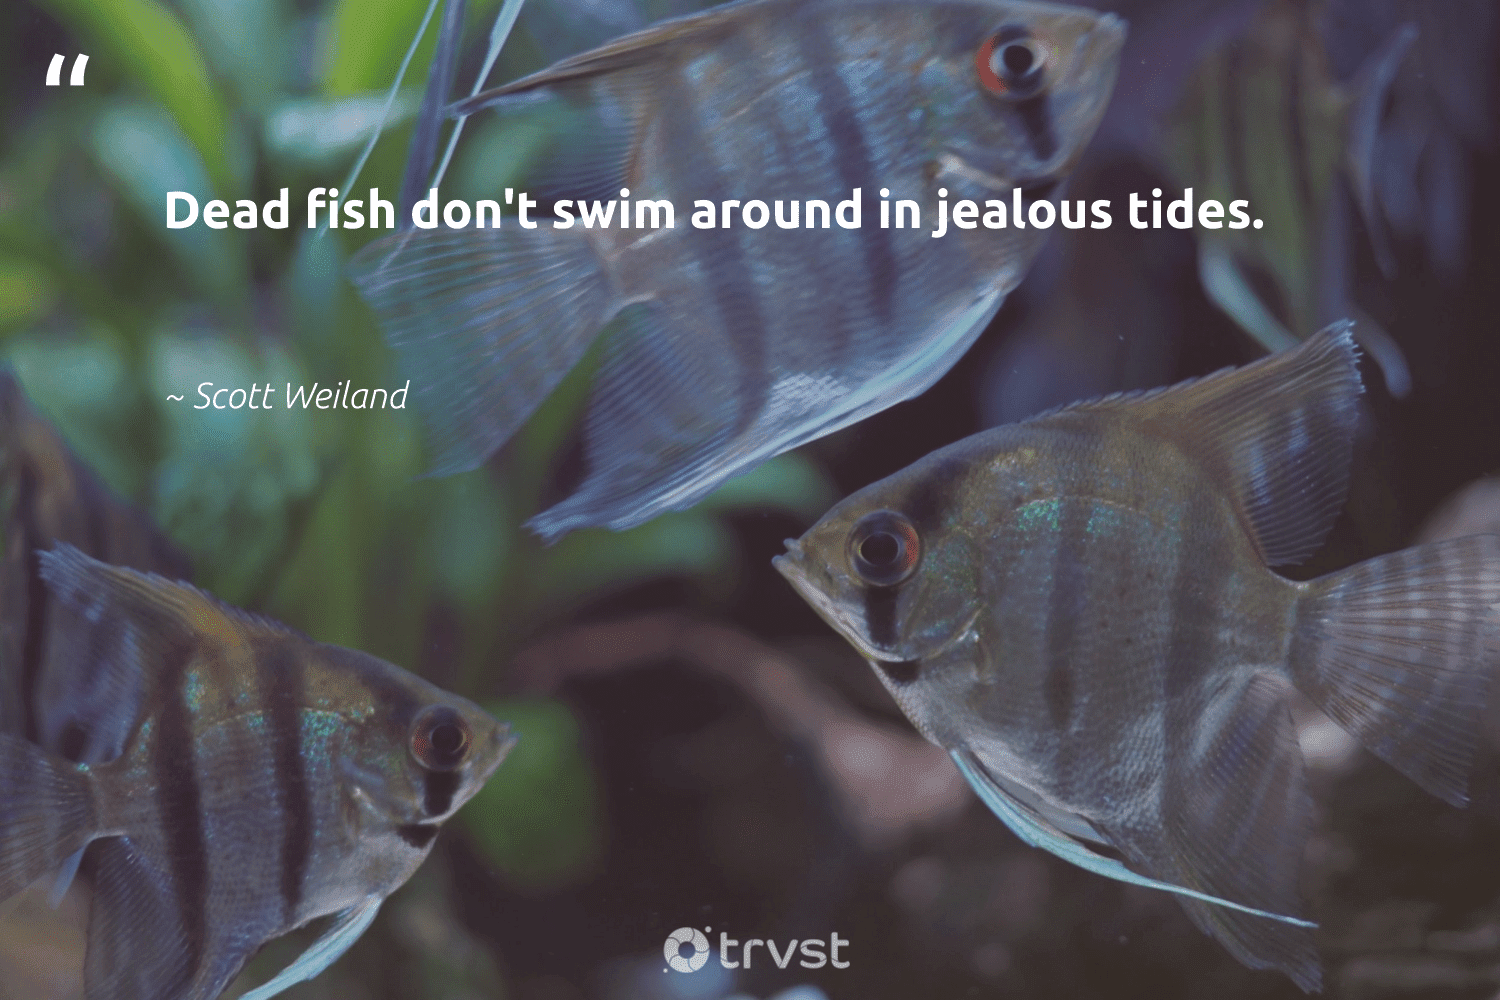 """""""Dead fish don't swim around in jealous tides.""""  - Scott Weiland #trvst #quotes #fish #savetheoceans #dosomething #sustainablefishing #socialchange #conservation #takeaction #perfectnature #planetearthfirst #marinelife"""